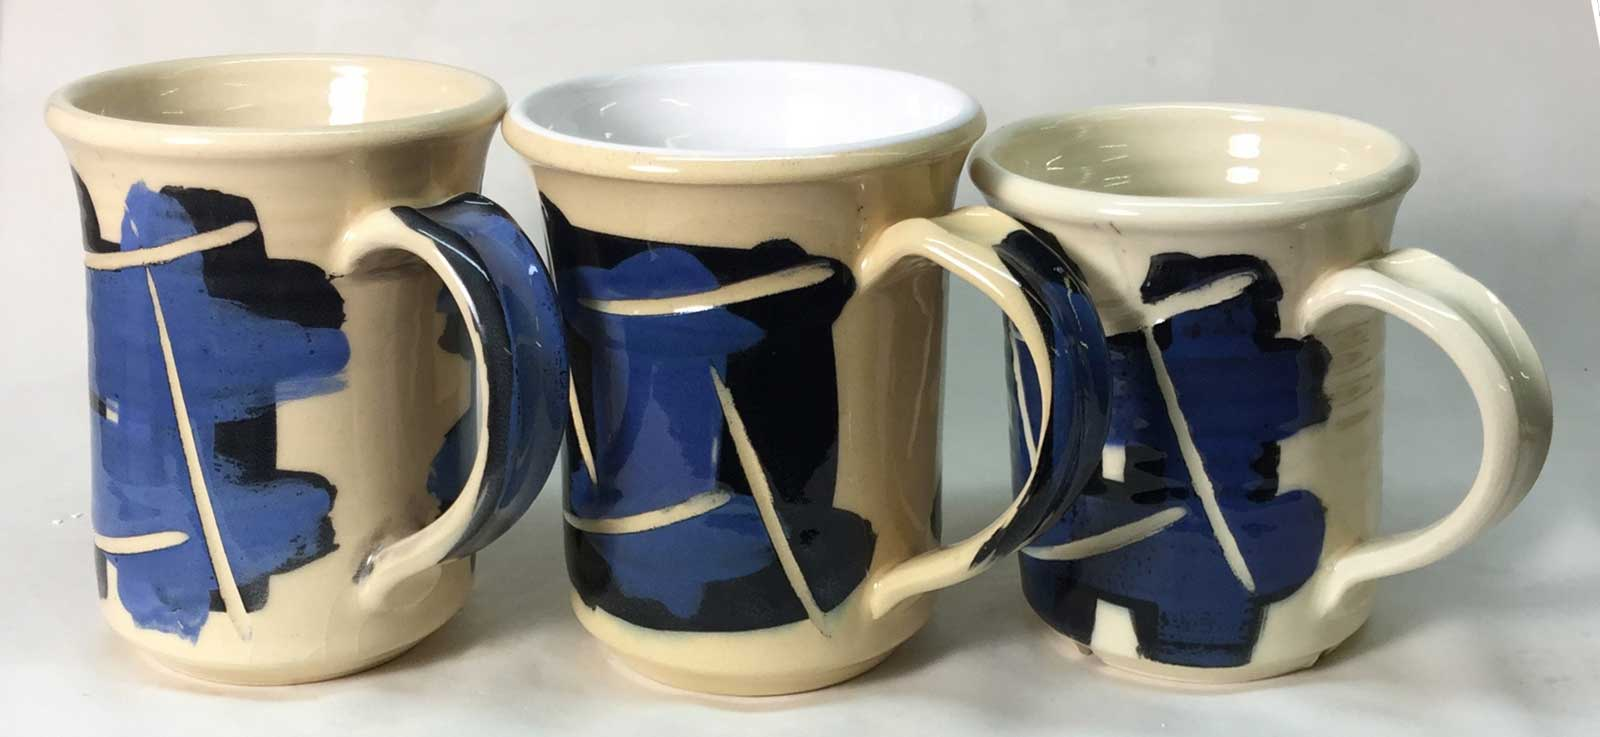 Zero6 porcelain, Ulexite and Fritted glazes, firing schedule